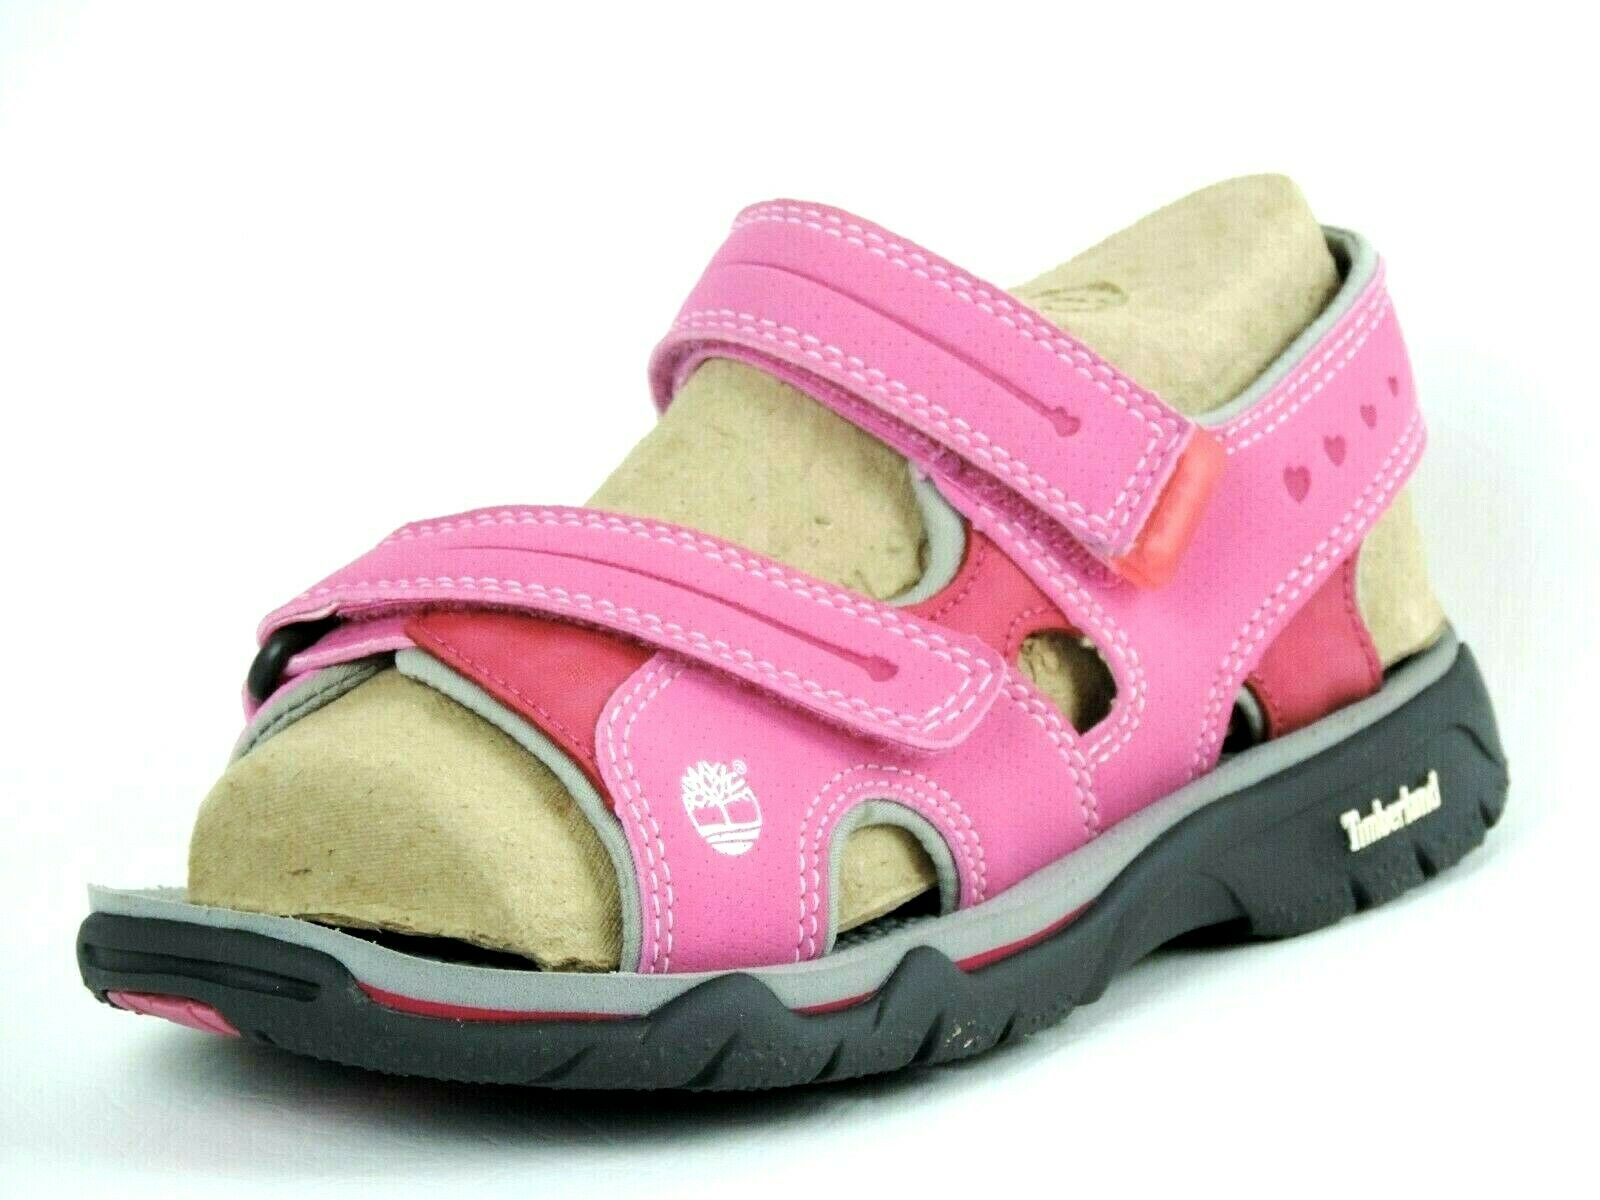 Timberland Girls Sandals Rock Skipper Leather Pink Rose 62738 Hiking Rare DS